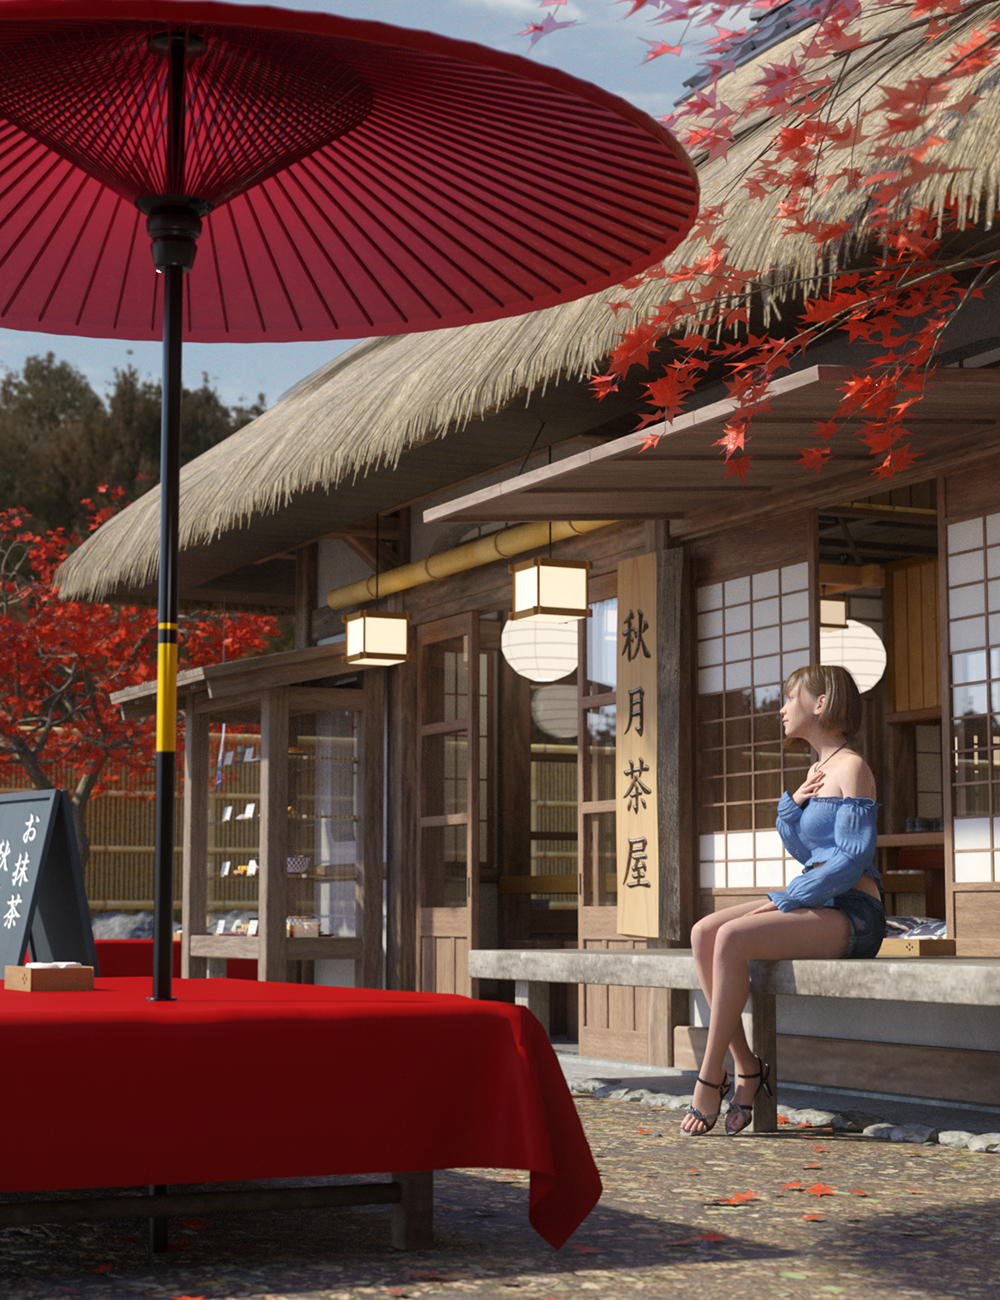 Traditional Japanese Tea Shop by: SilverMoon, 3D Models by Daz 3D